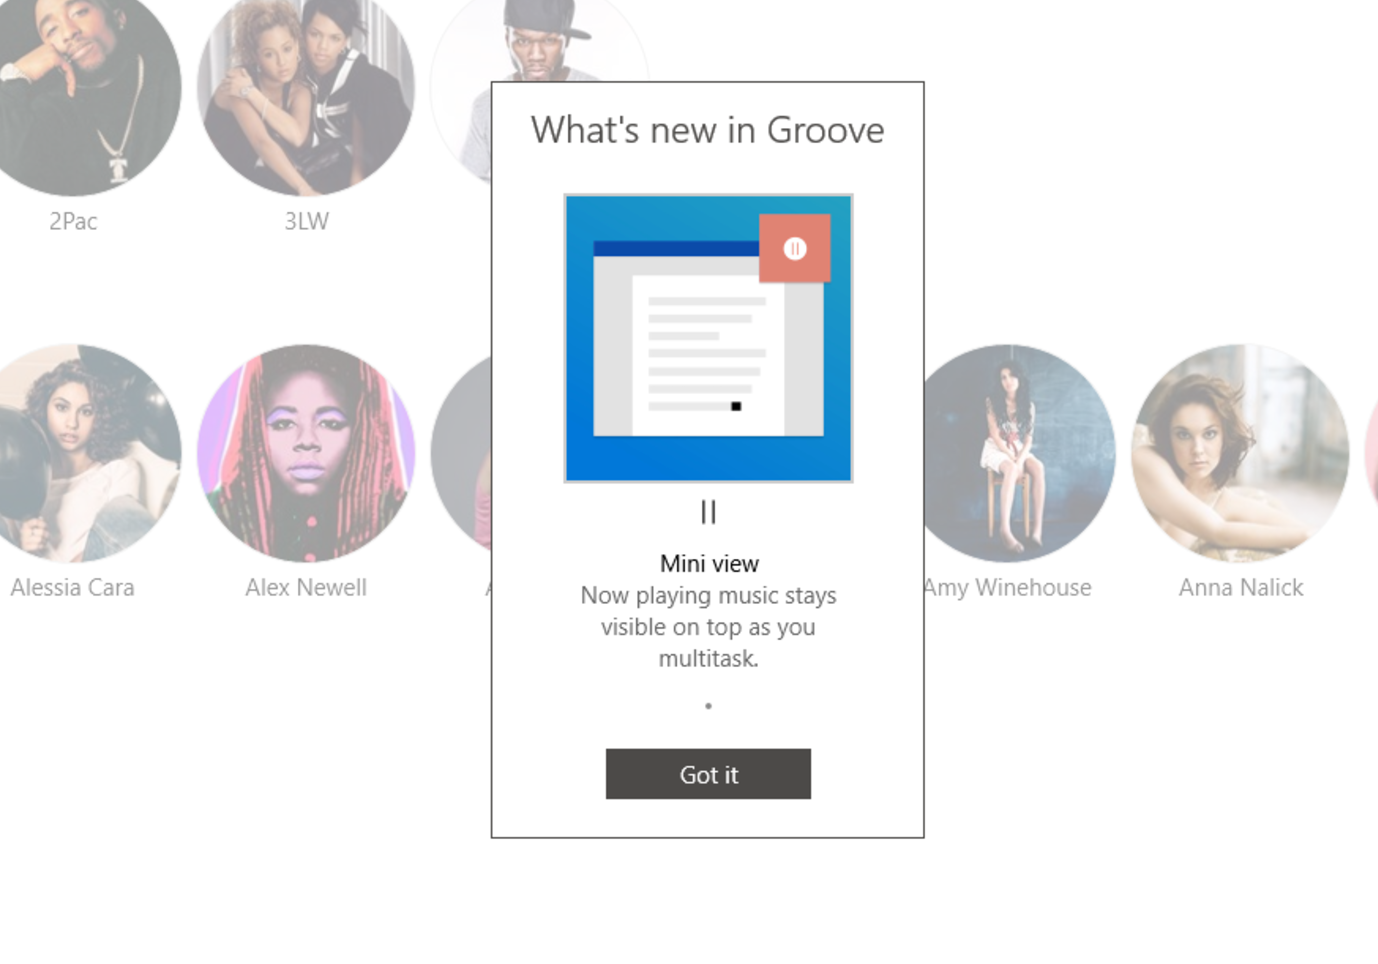 Groove Music is getting a new mini-player in Windows 10 1